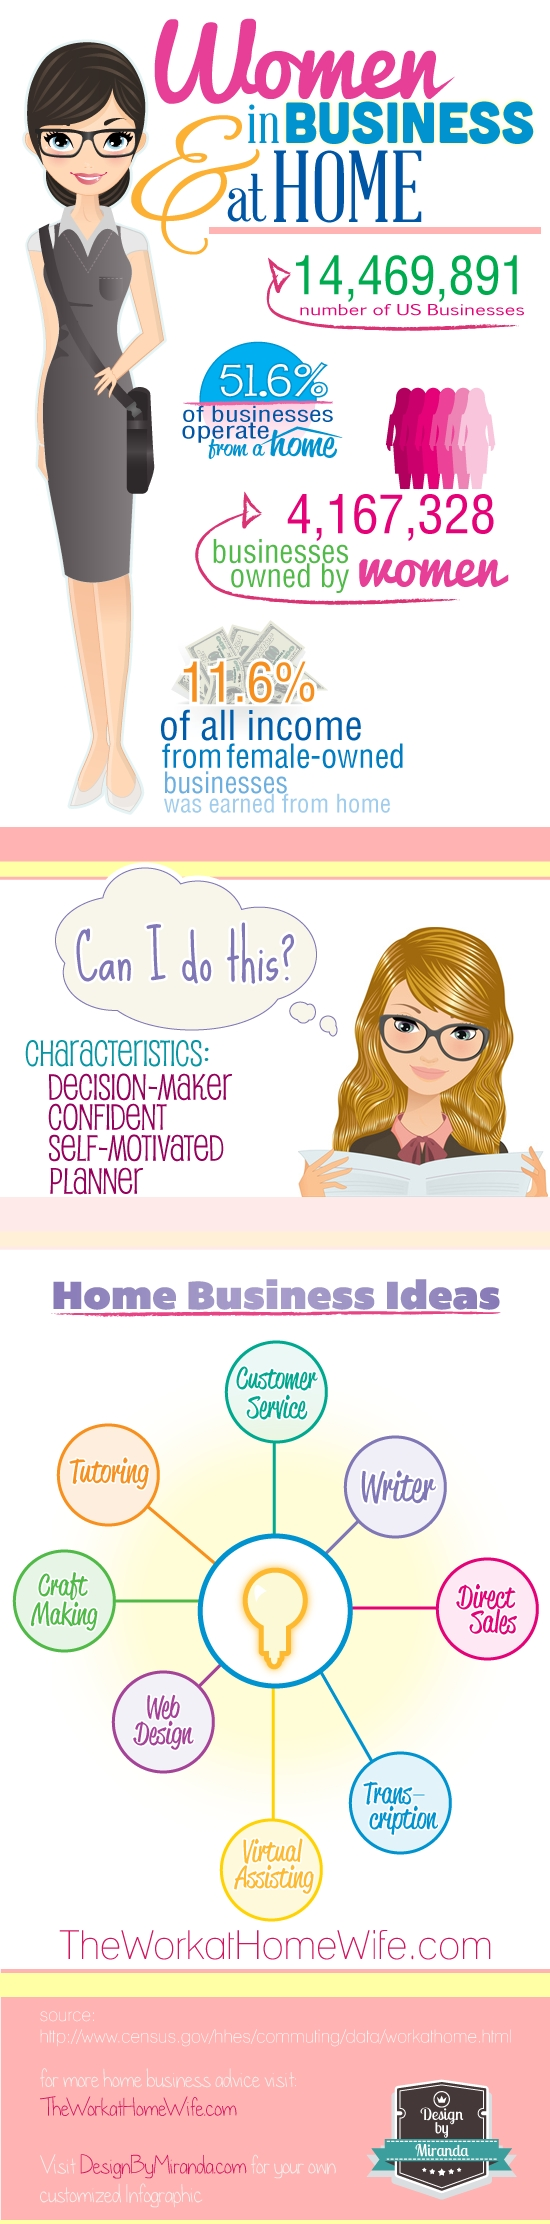 10 Nice Home Based Business Ideas For Women women in home based business infographic infographic business 1 2020